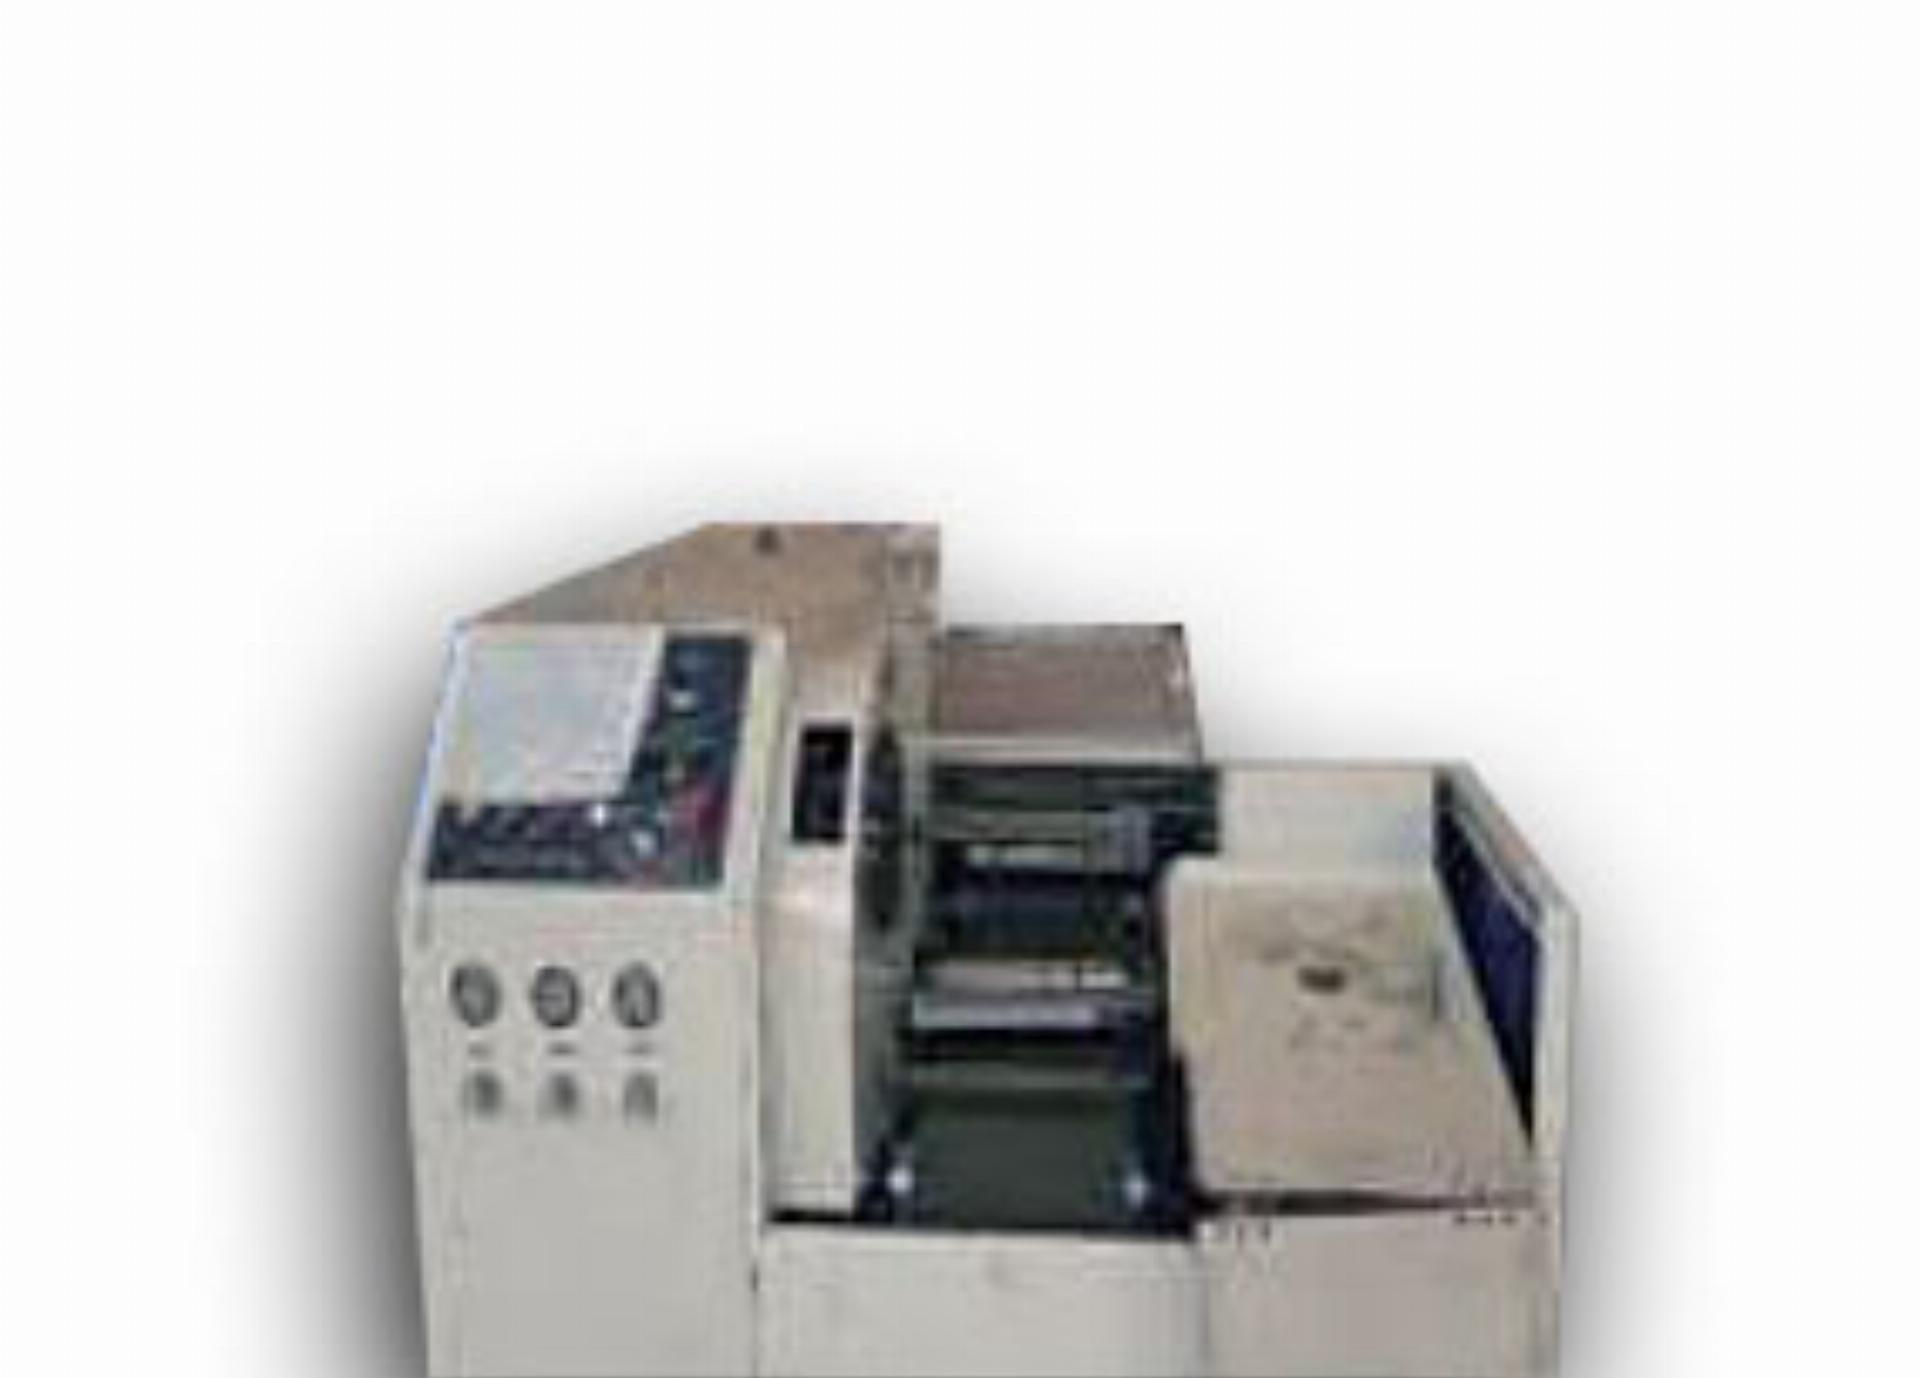 UC Cwe 330 CW-1200D G+OR Fully Automatic